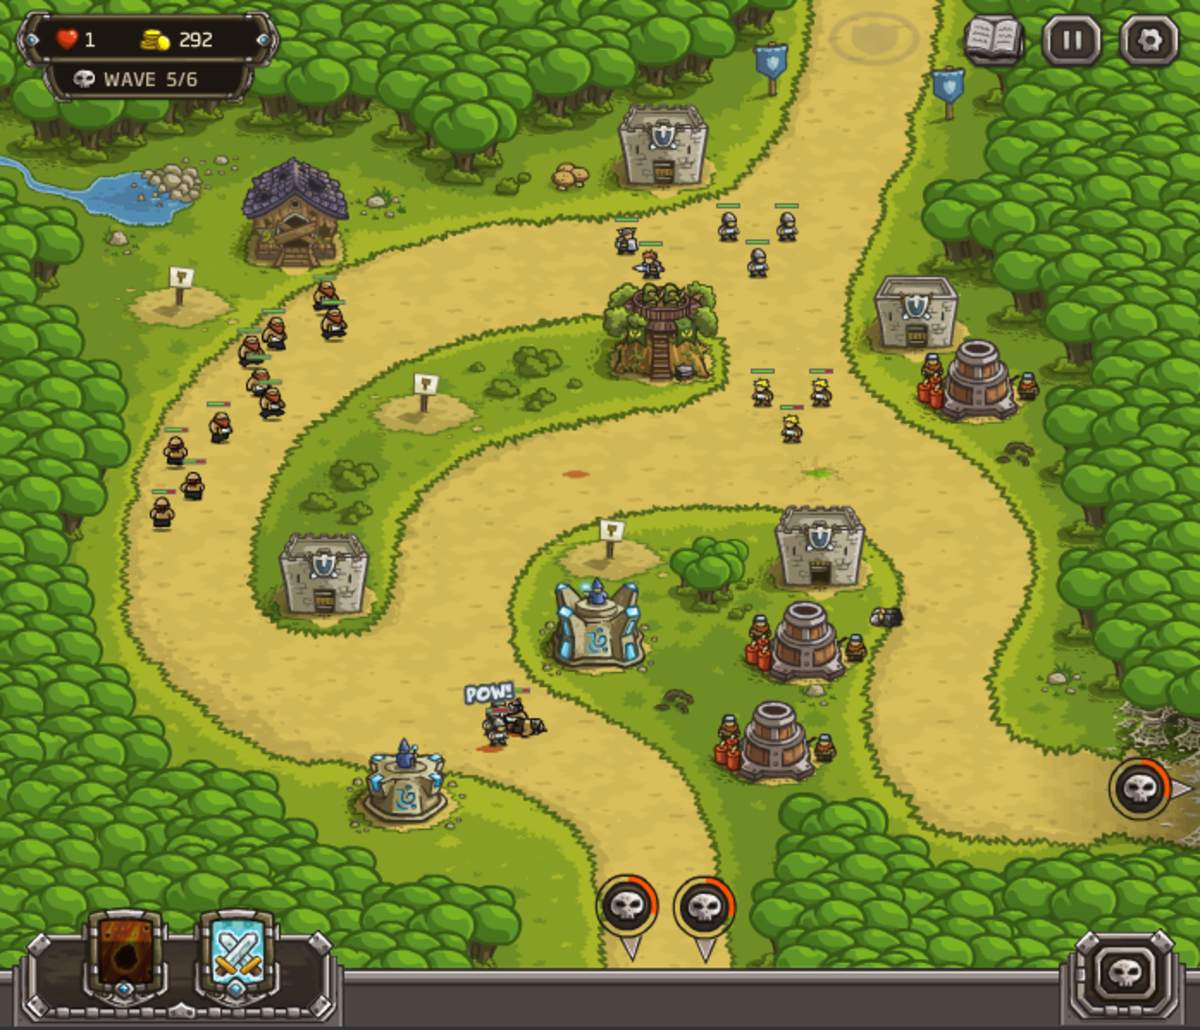 Kingdom Rush walkthrough: Level 5 - Silveroak Outpost